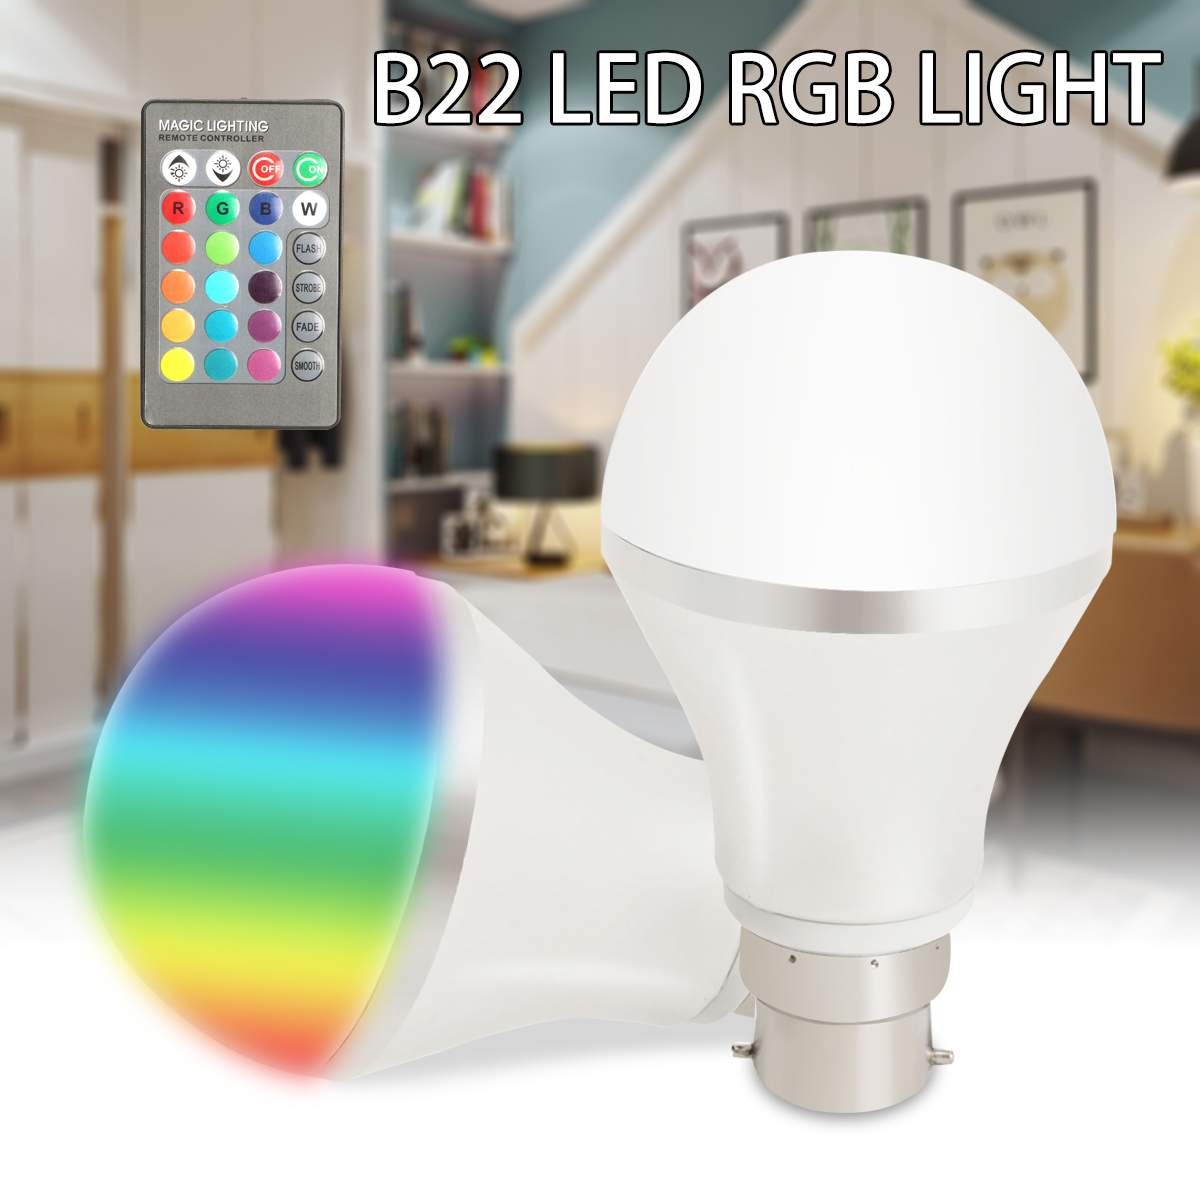 RGB LED Bulb B22 Dimmable Colour Changing Light Bulb 4W 85-265V Smart IR Remote Control for Home Living Room Decor